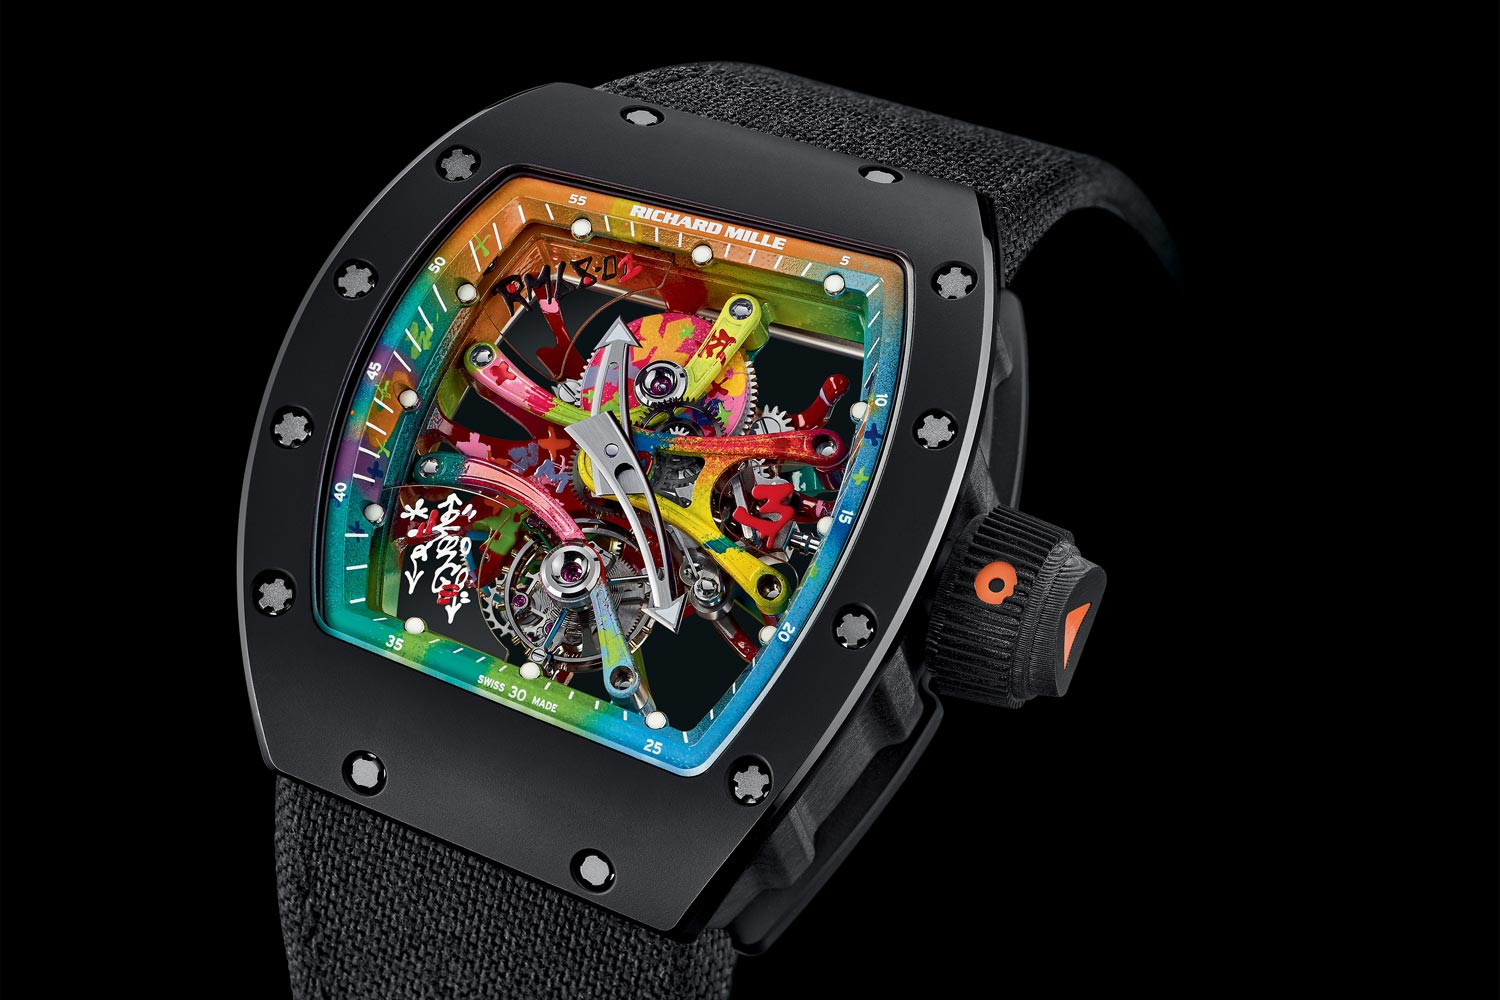 Introducing The Richard Mille Rm 68 01 Tourbillon Cyril Kongo